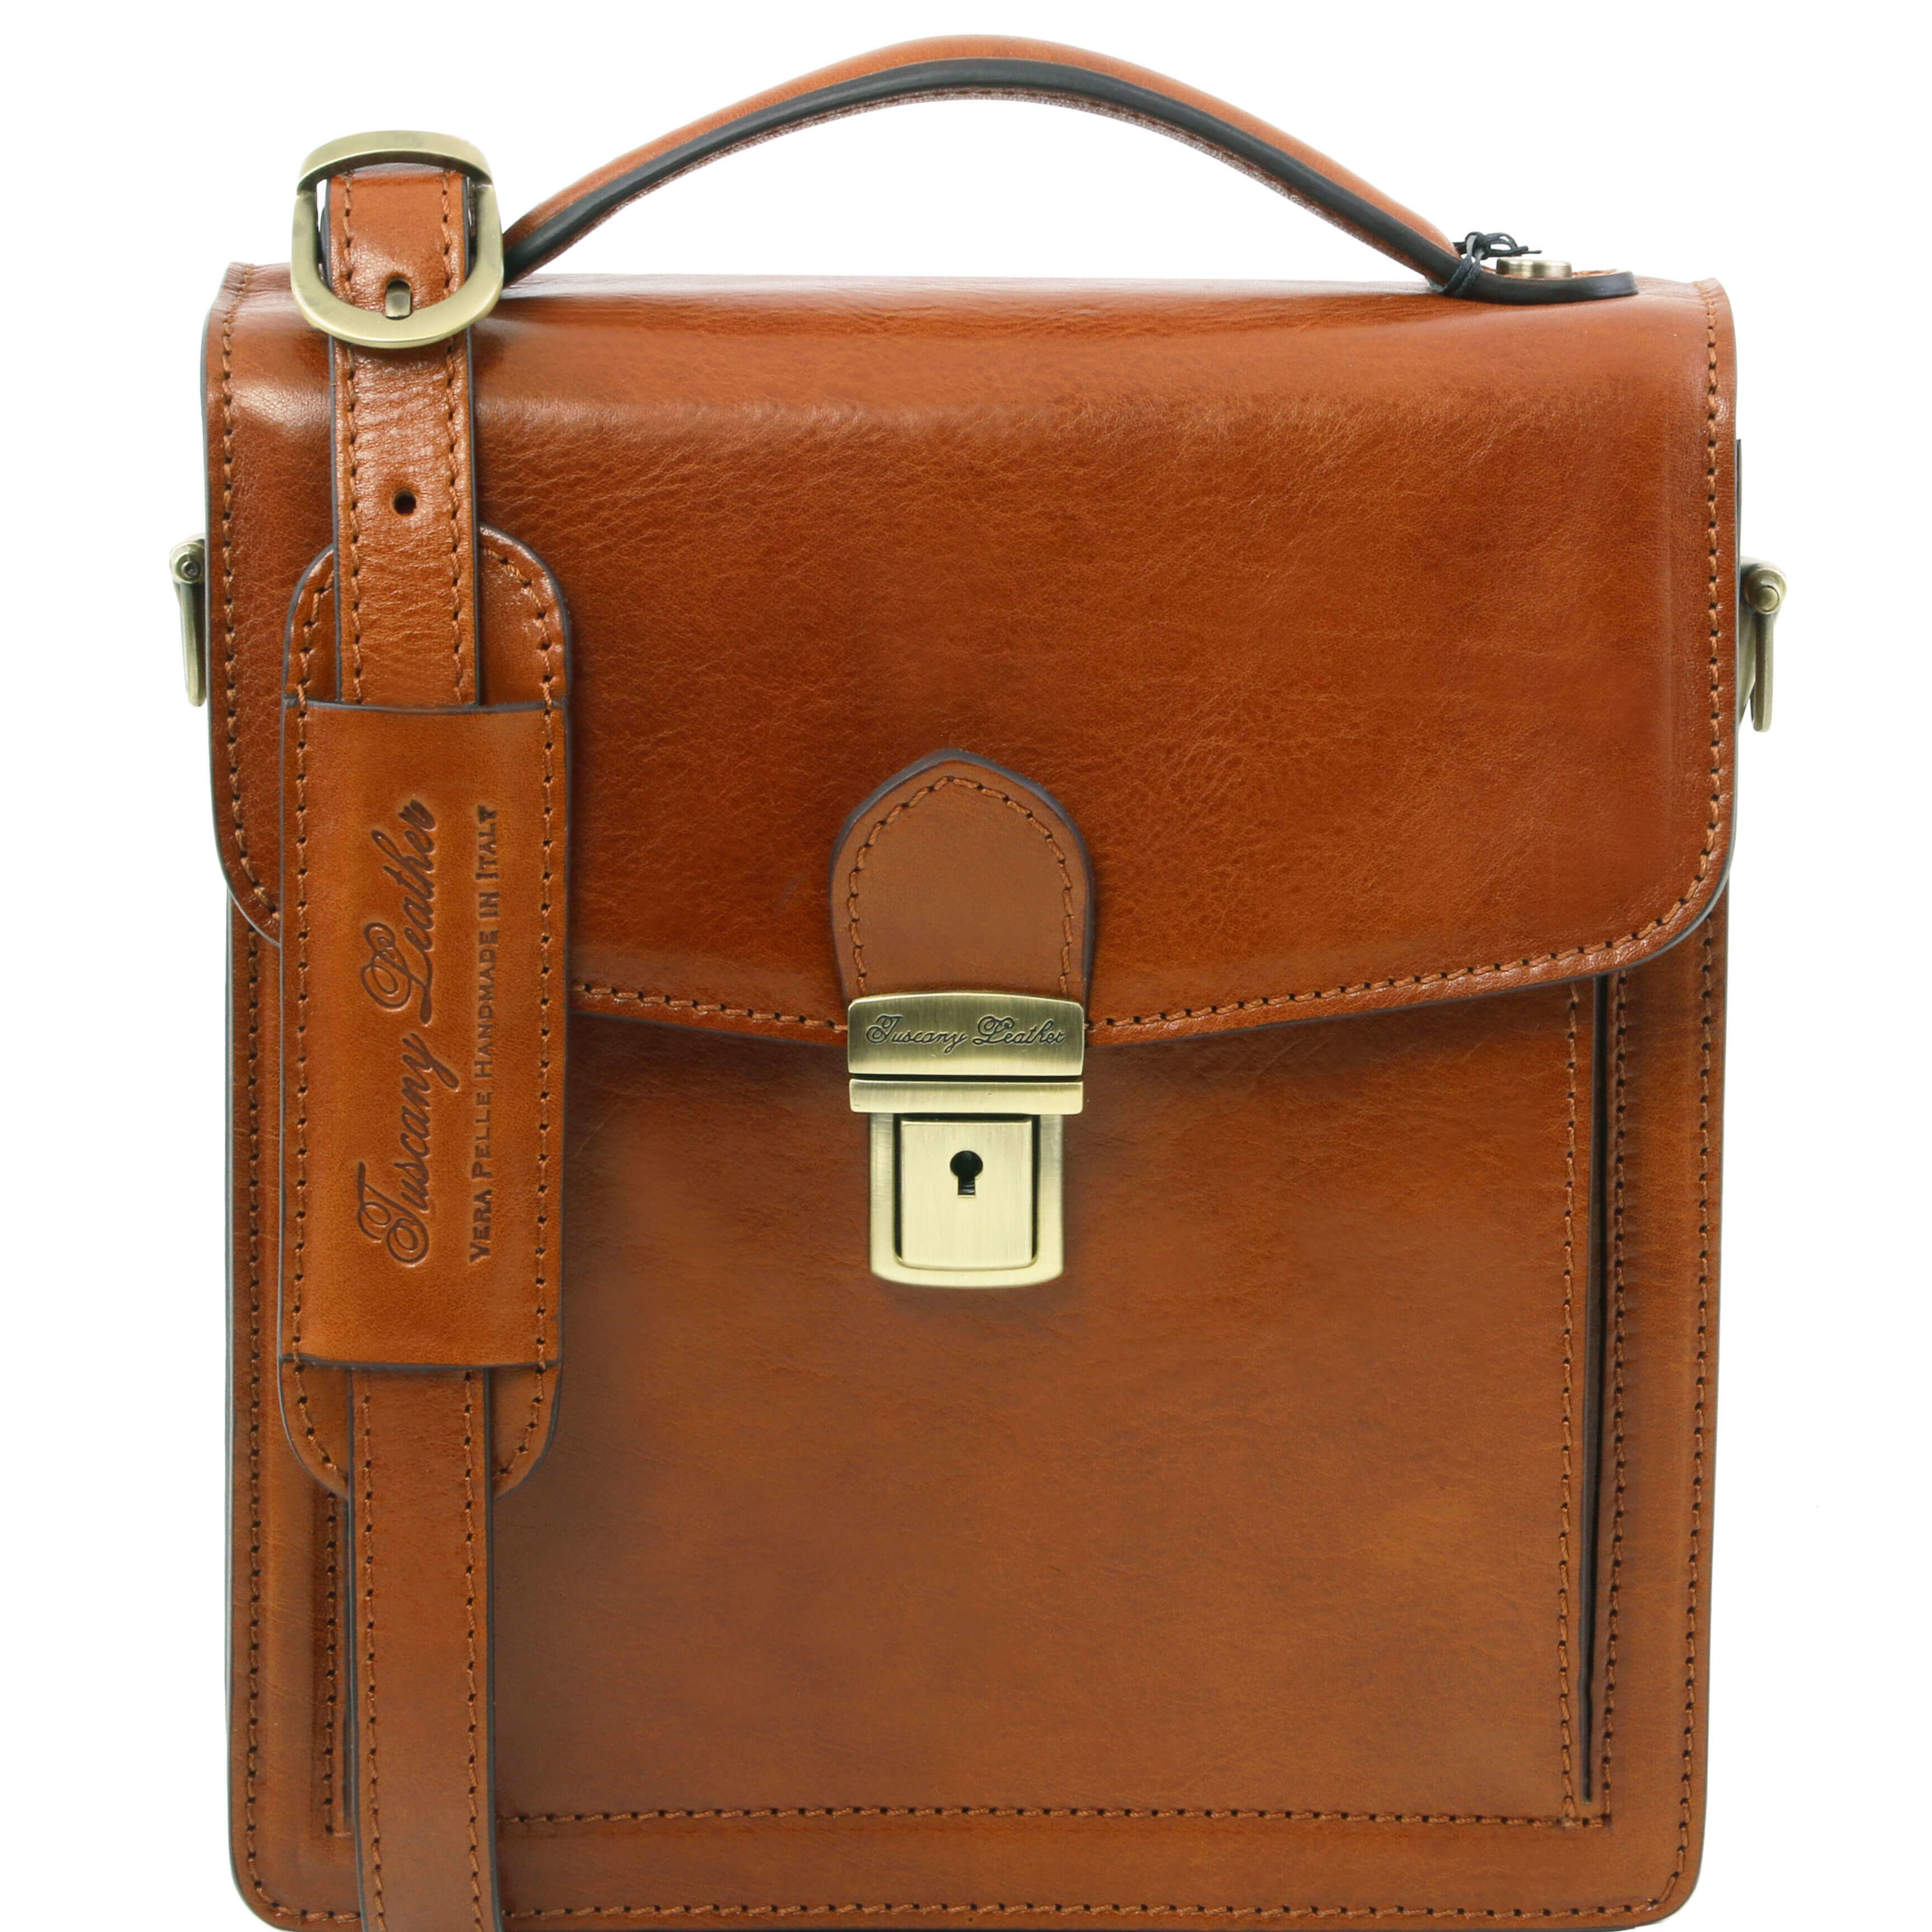 TL141425 New David Mens Shoulder-Saddle-Clutch-Man Bag 4 Colours+Shoulder Strap In Honey